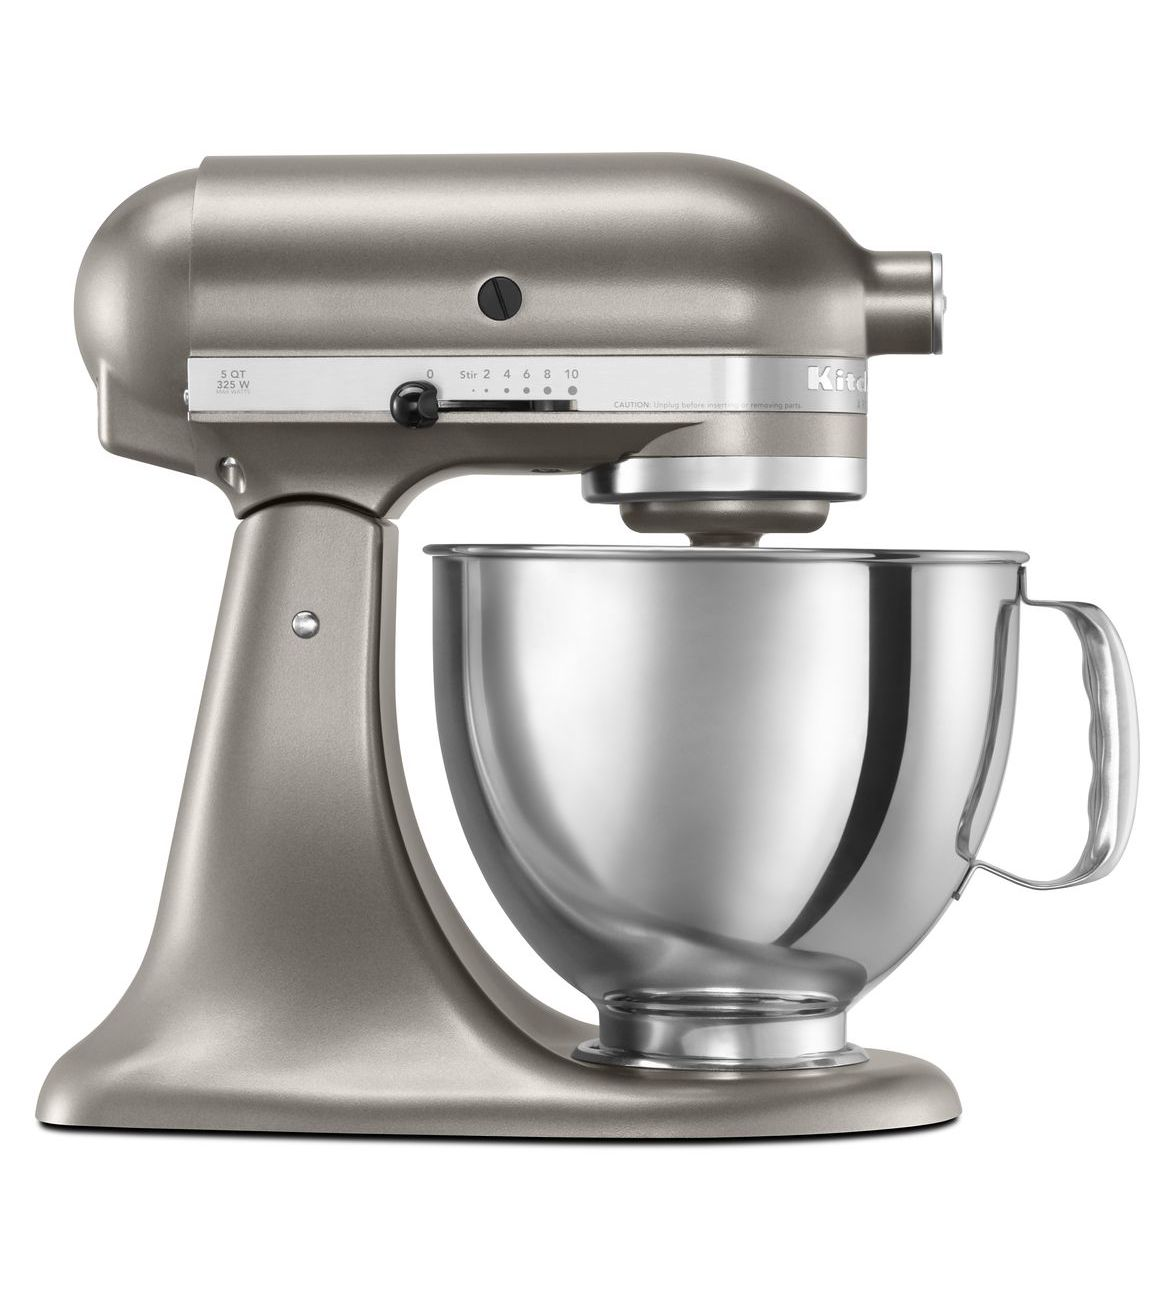 KitchenAid® Refurbished Artisan® Series 5 Quart Tilt-Head Stand Mixer, RRK150 Cocoa Silver